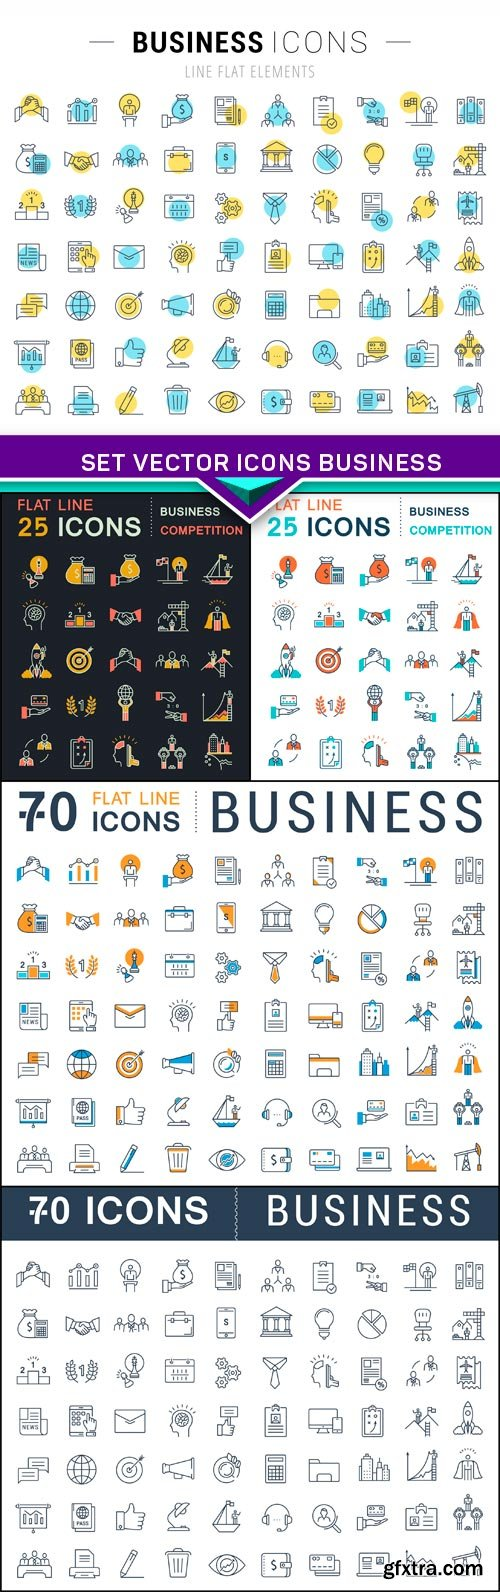 Set Vector Icons Business 5X EPS